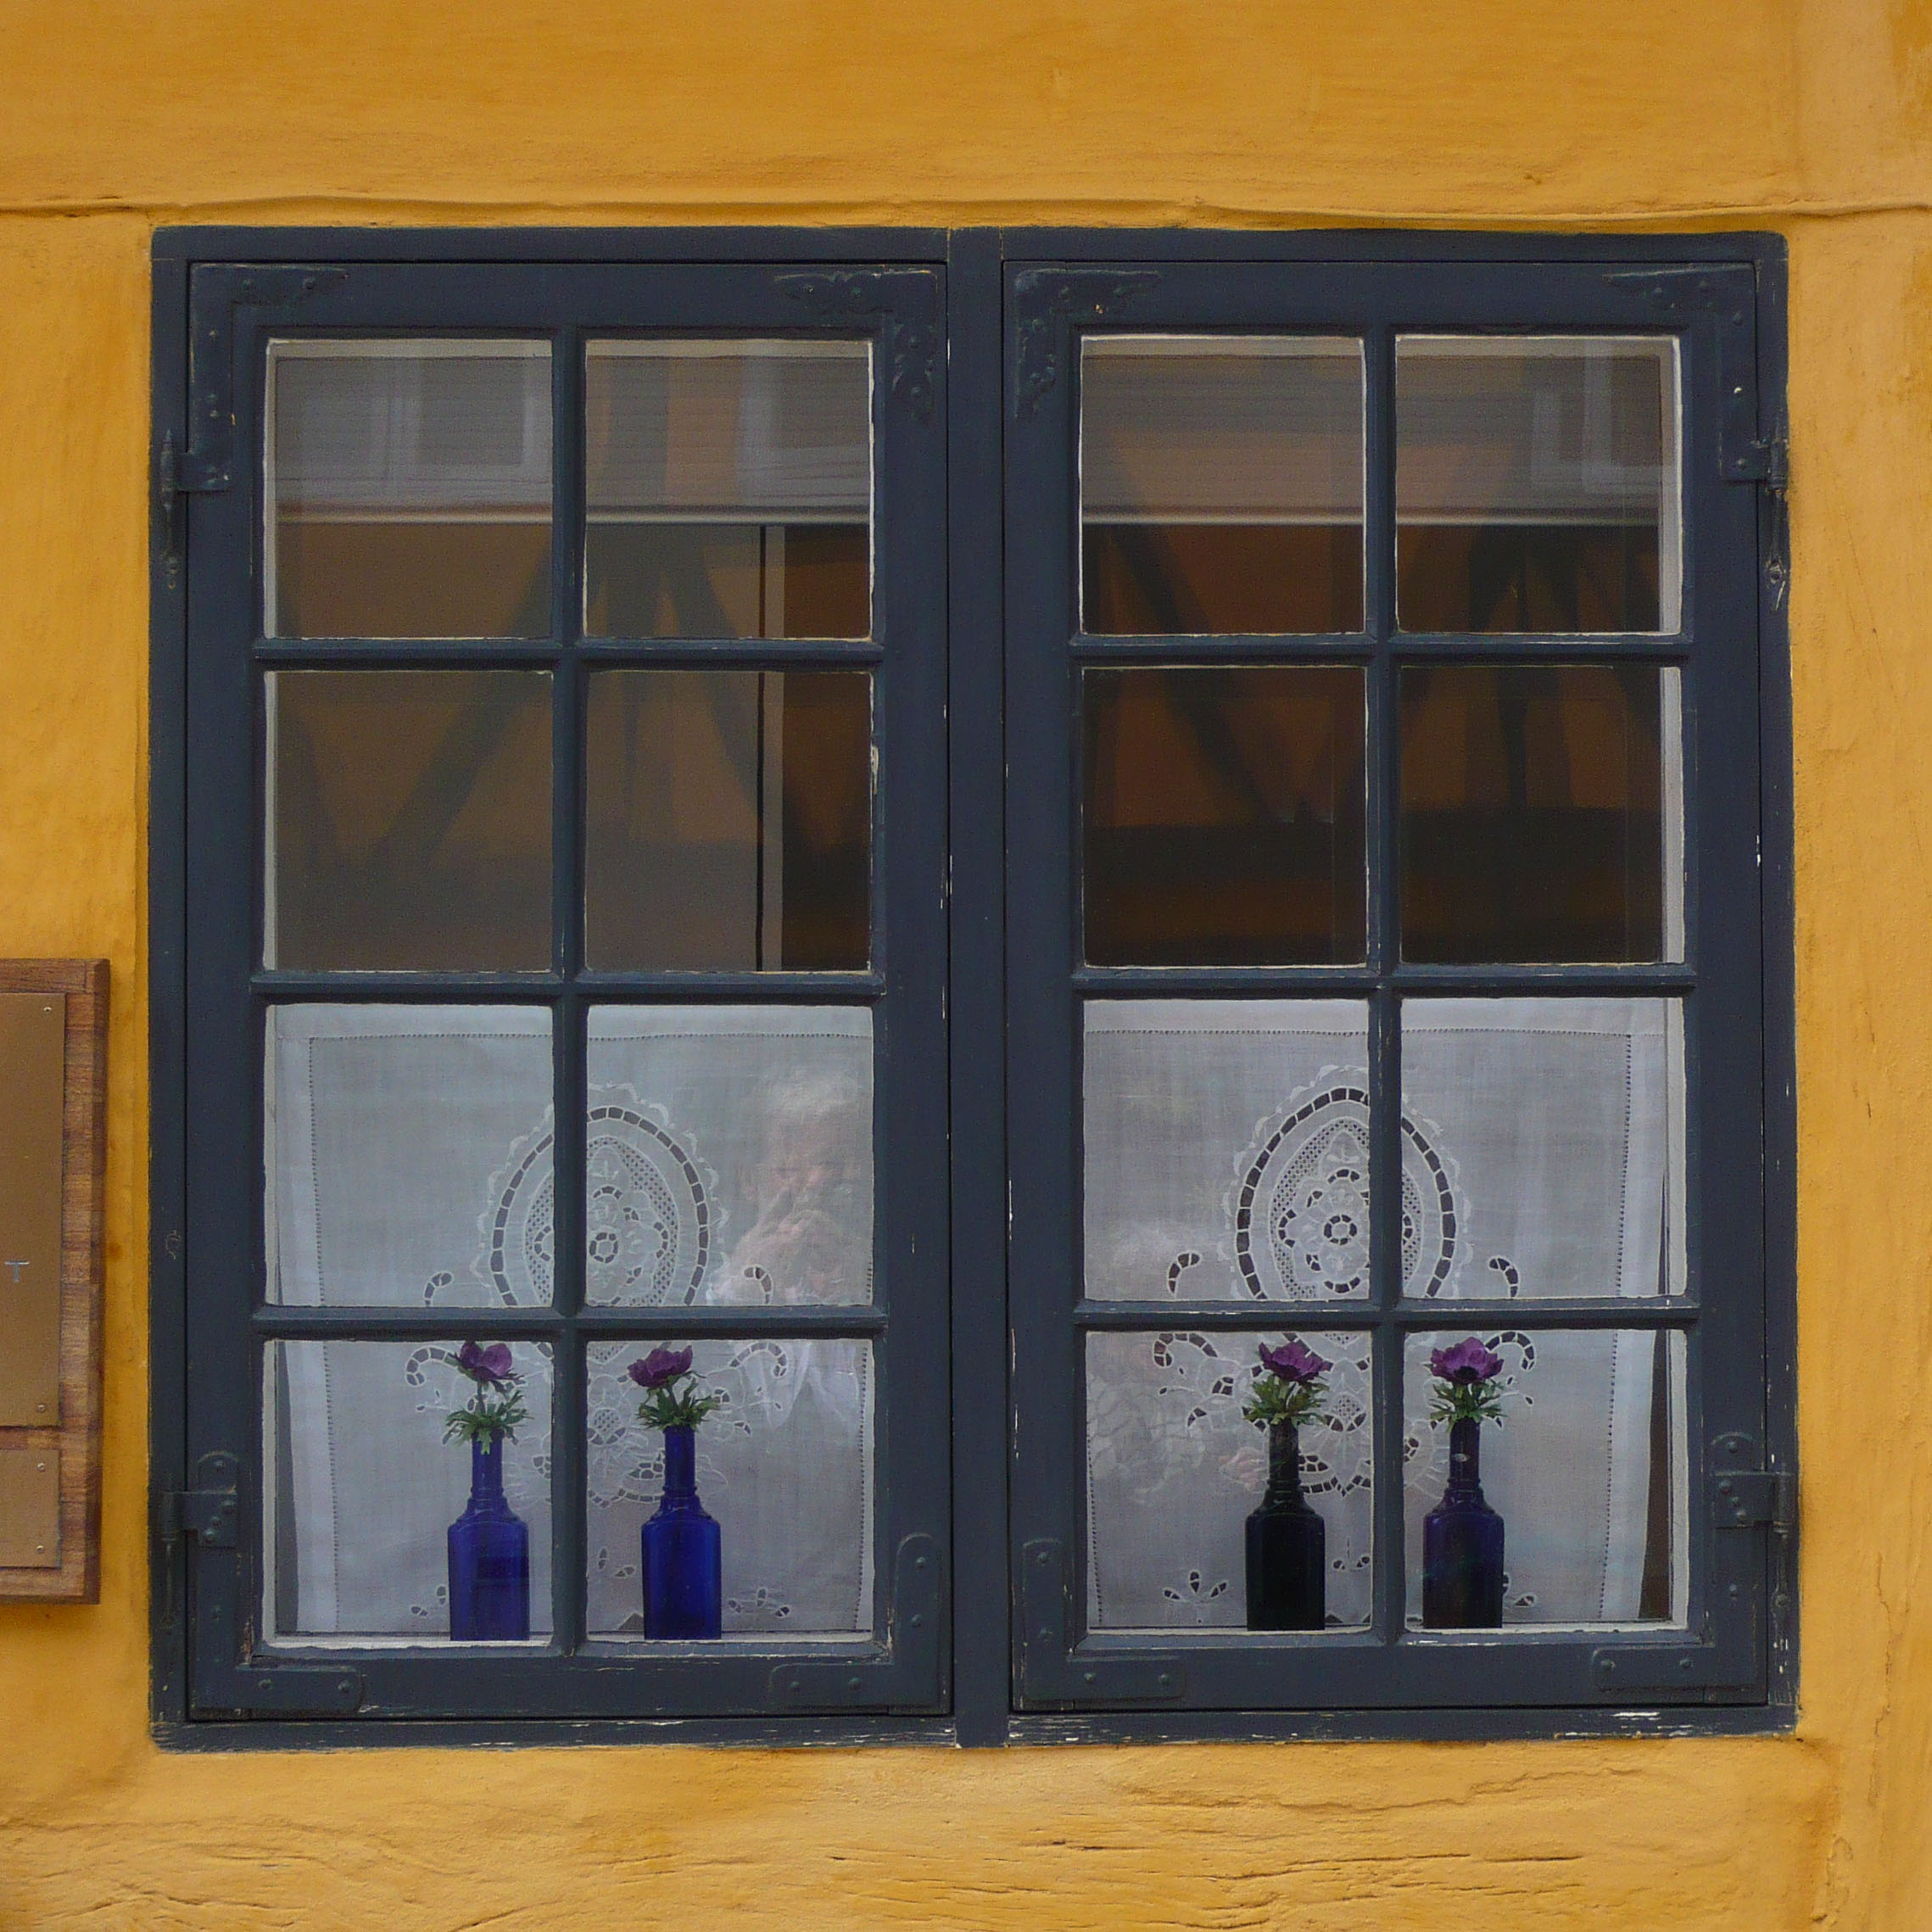 Detail of a window in Køge